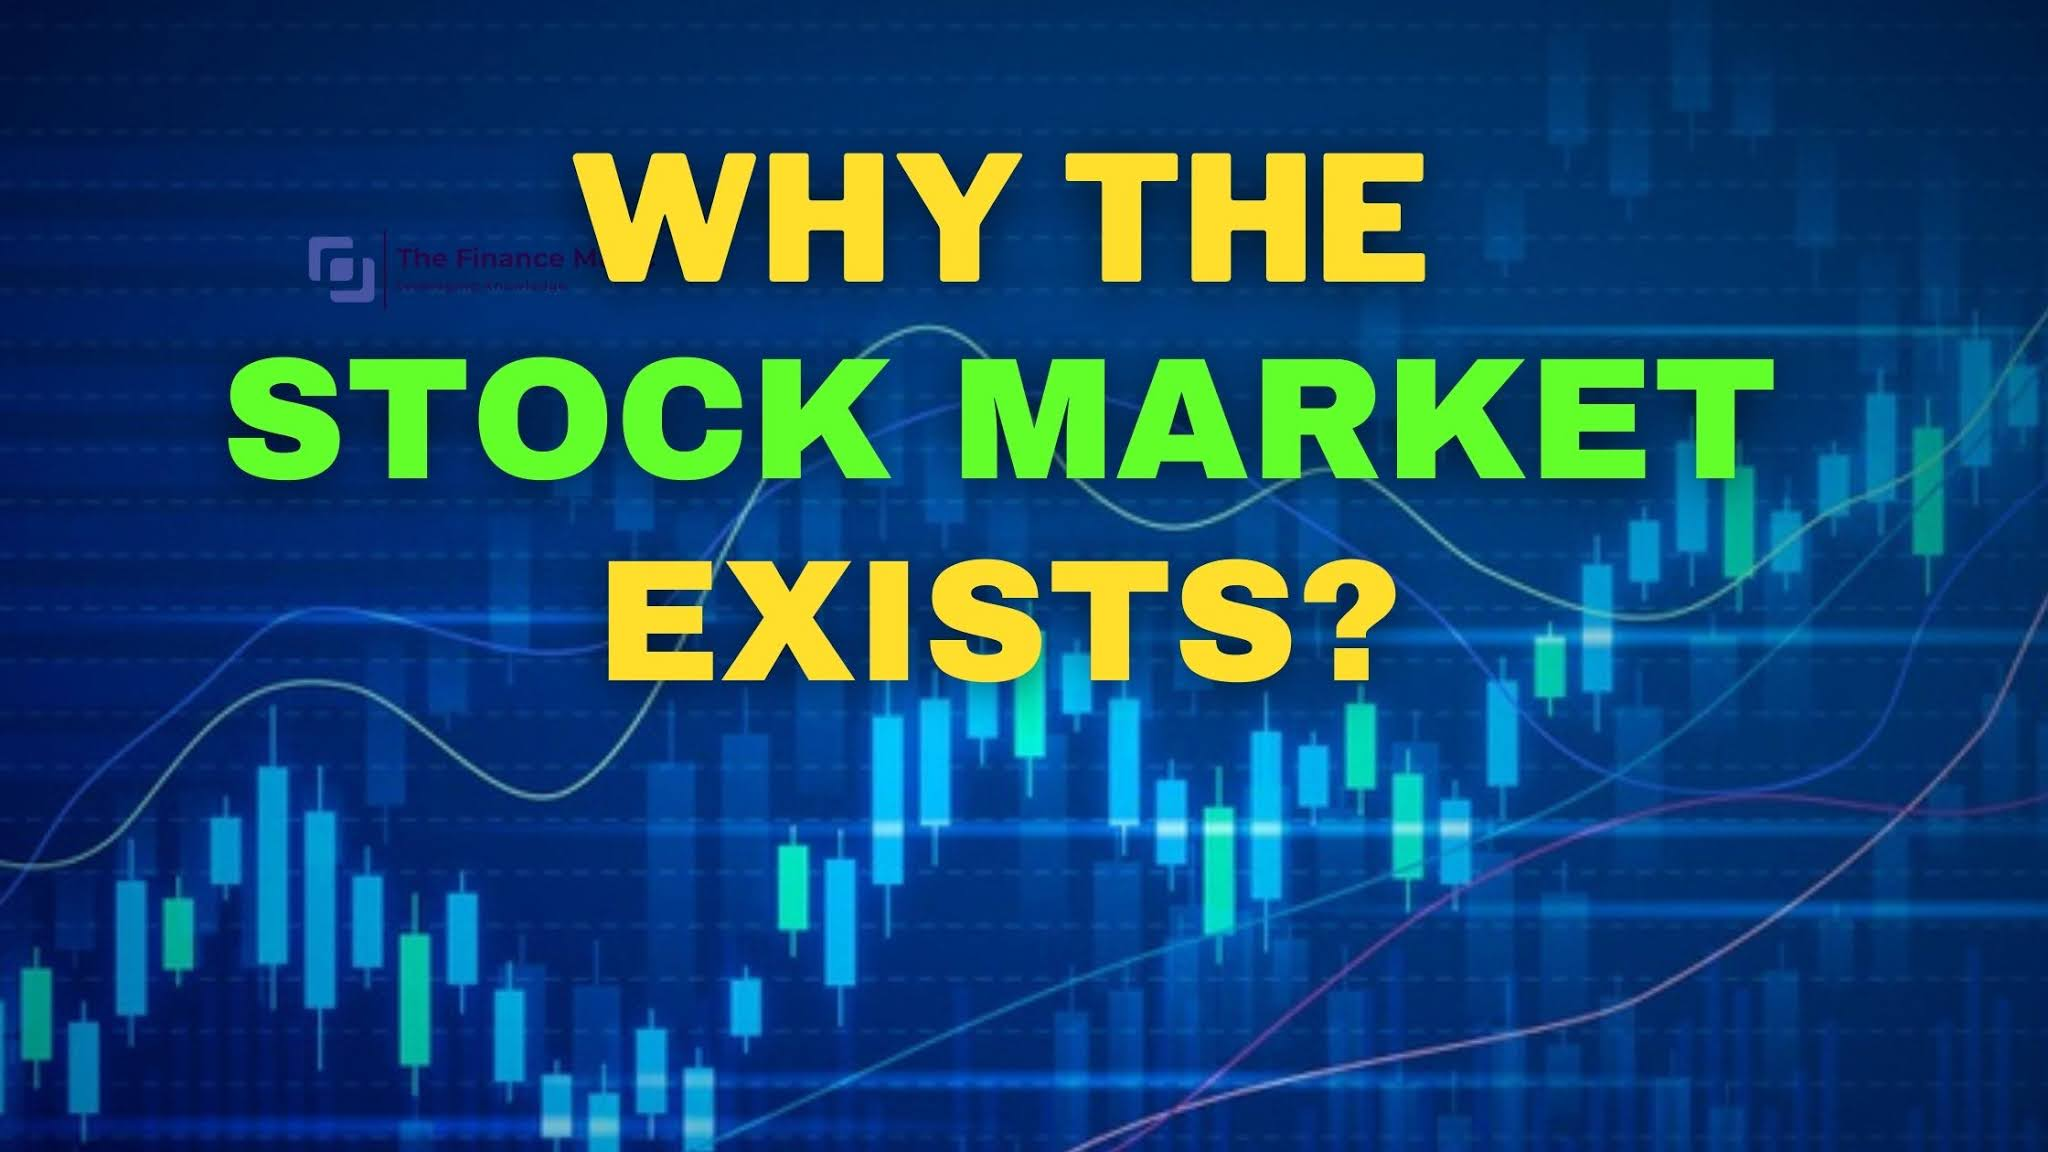 Why does the stock market exists?